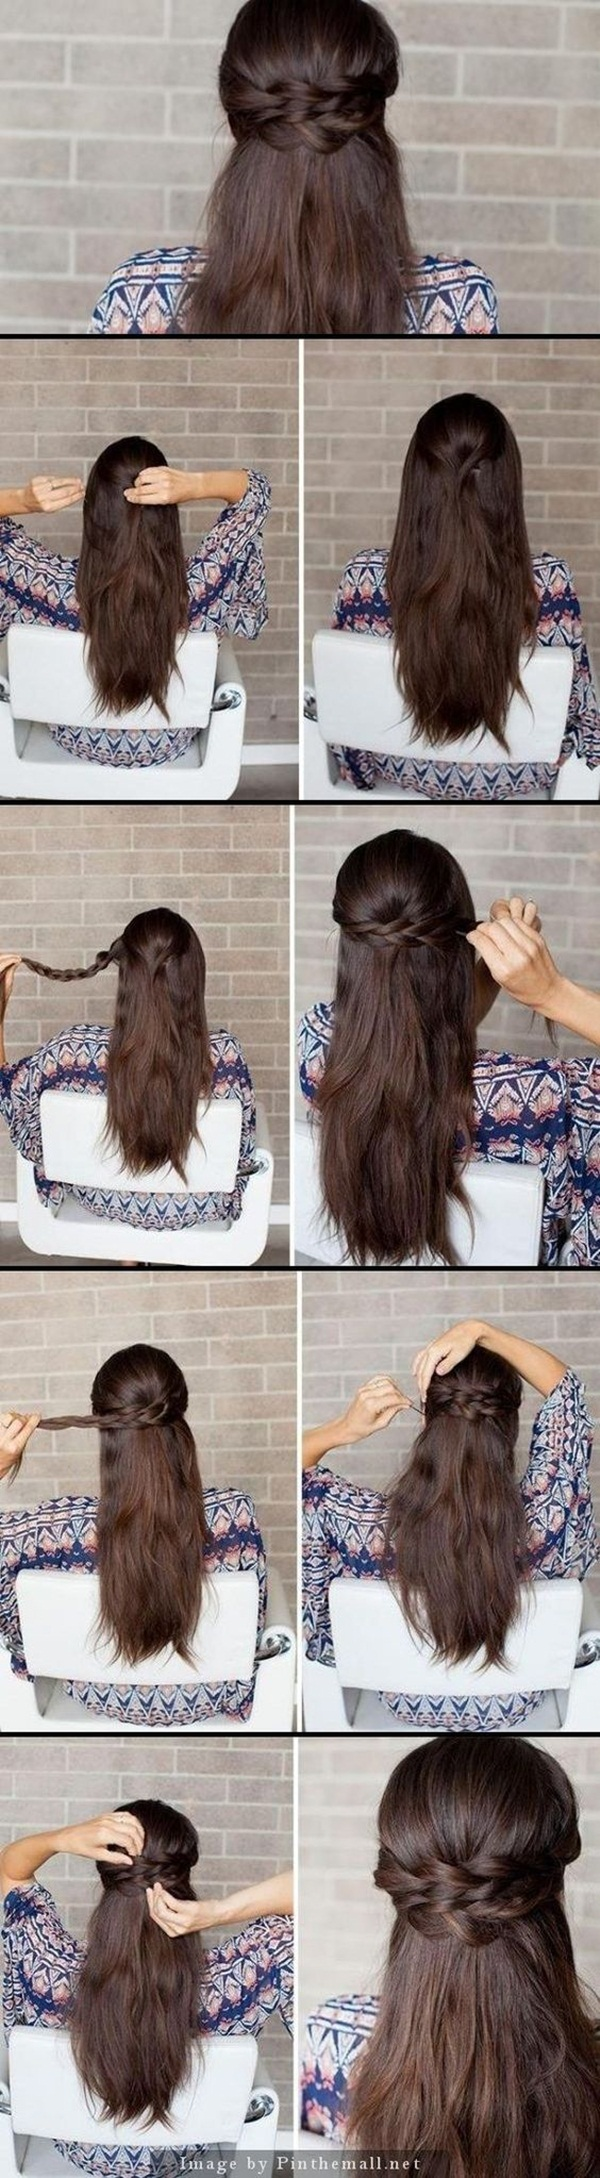 Easy Hairstyles For School (36)